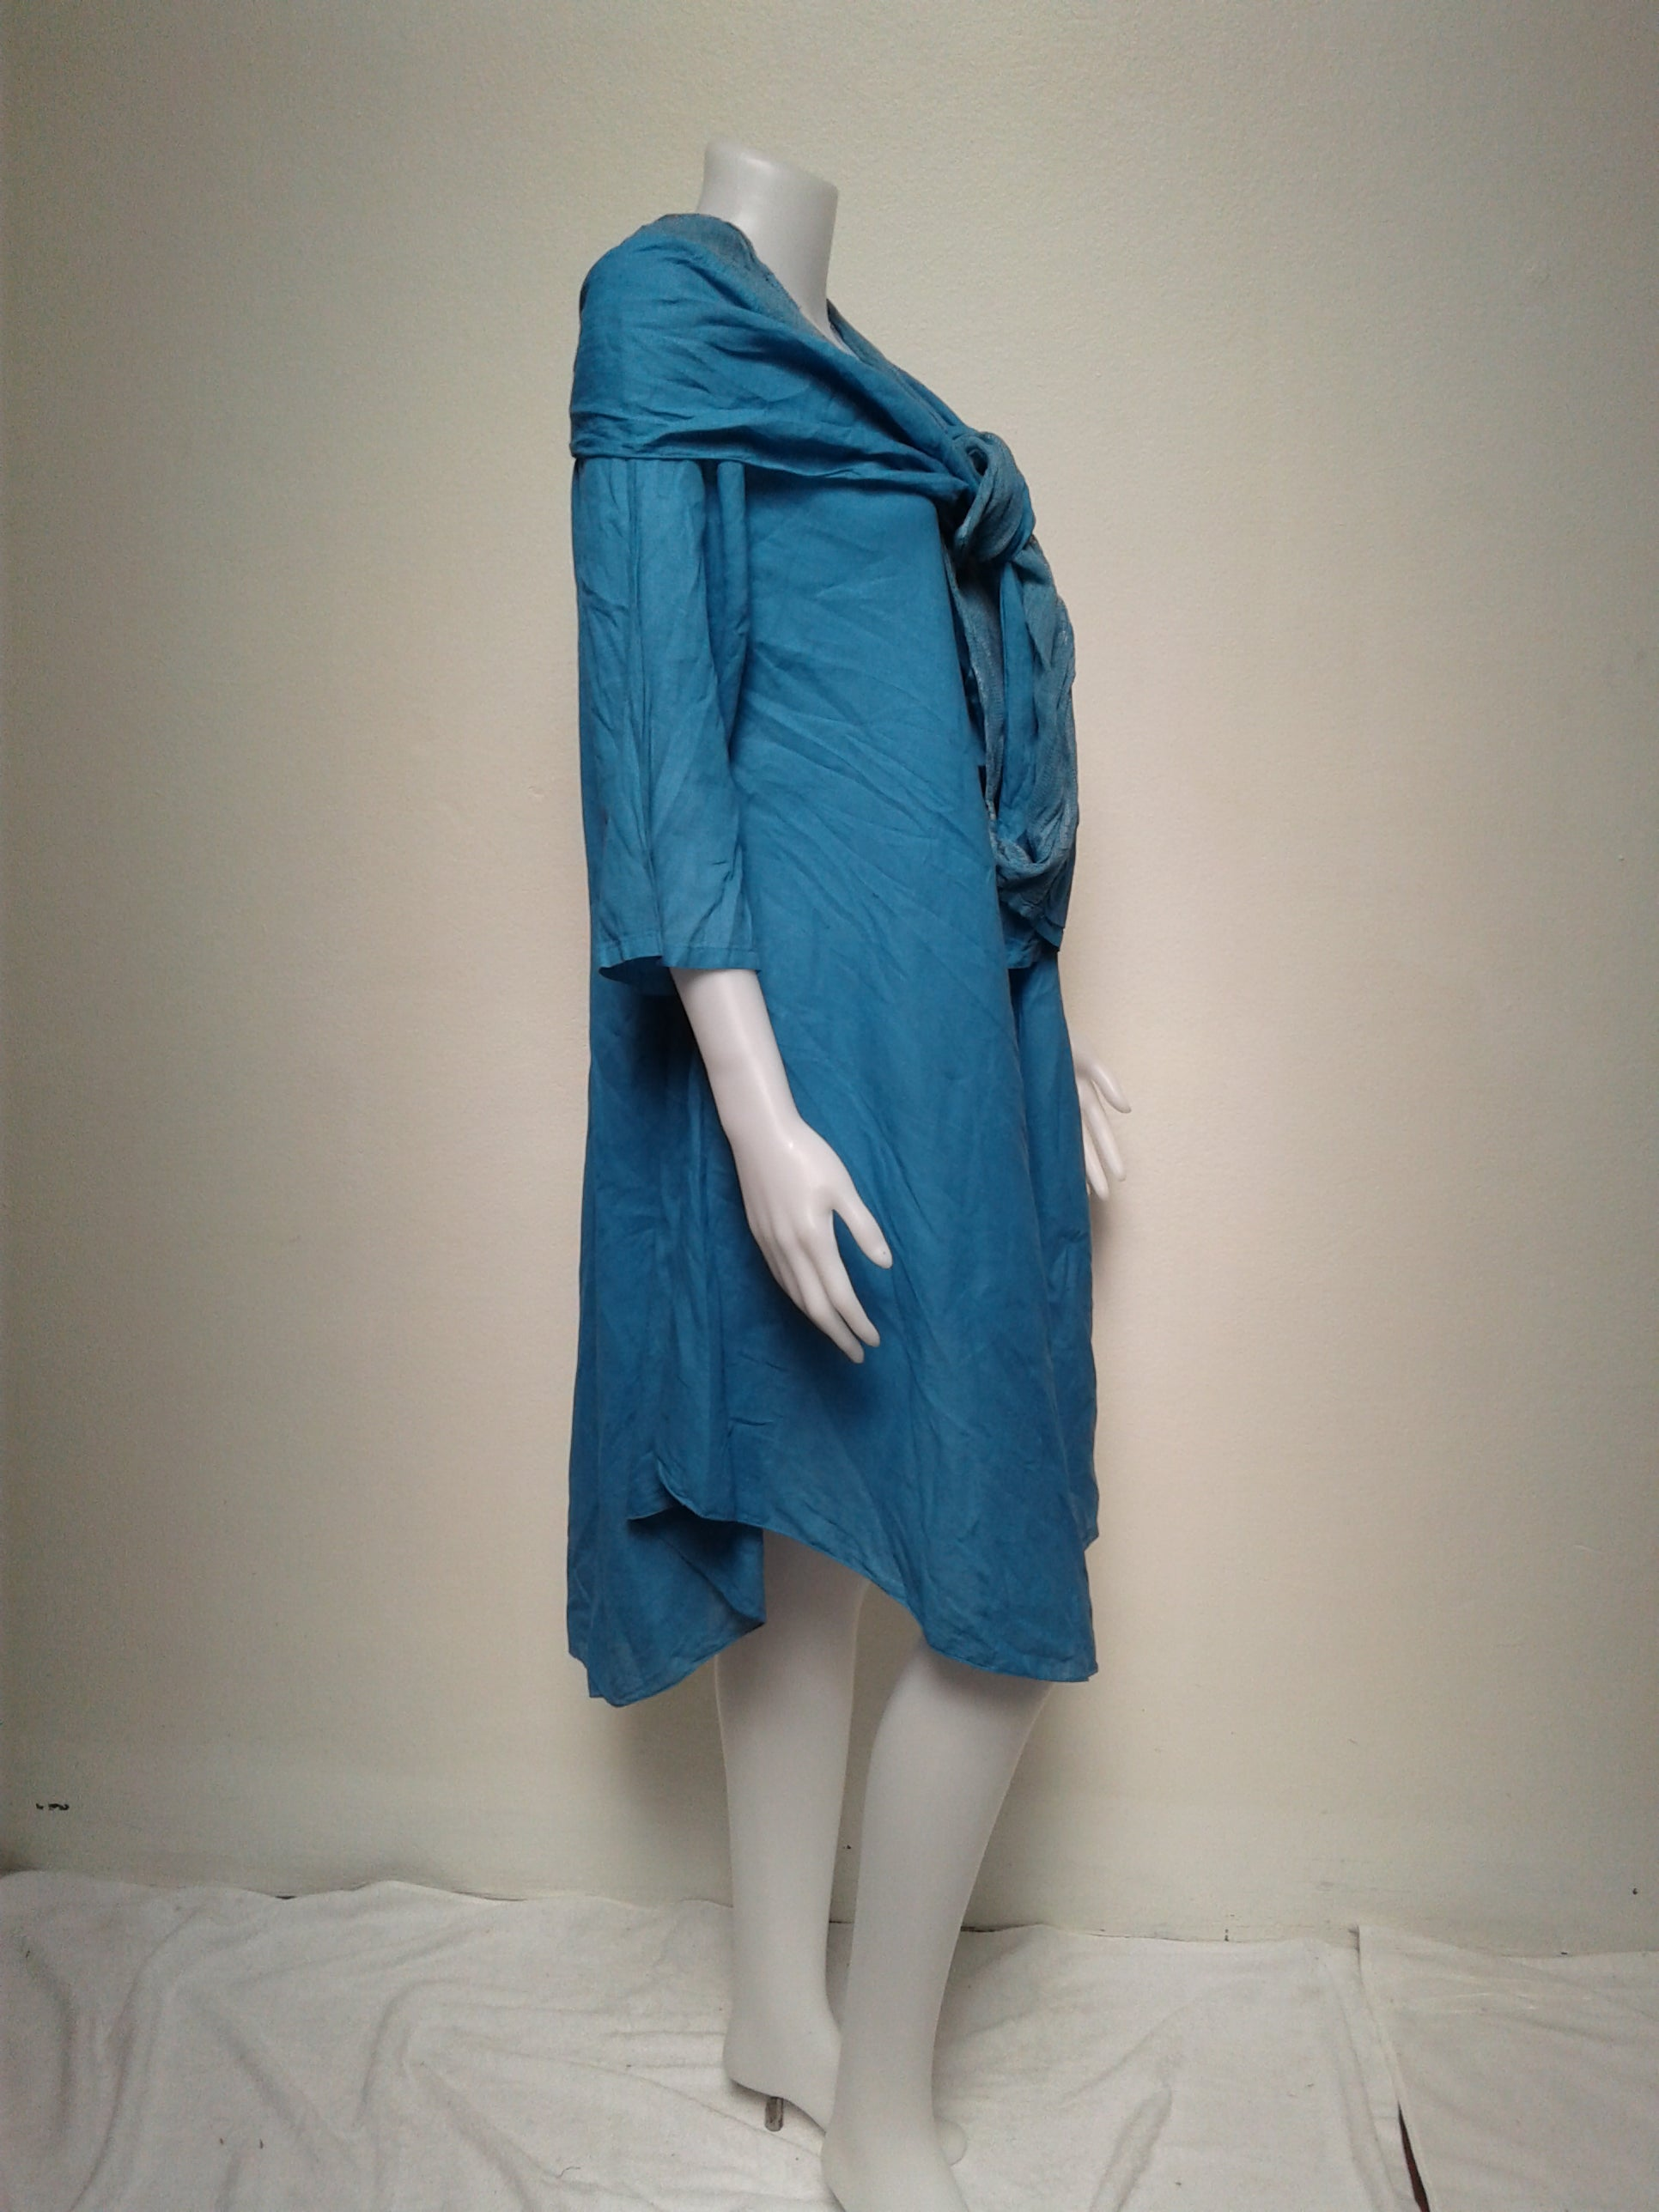 Midi Dress with Sleeves and Detachable Scarf,Cotton Dresses,[Easy Breezy Clothing]